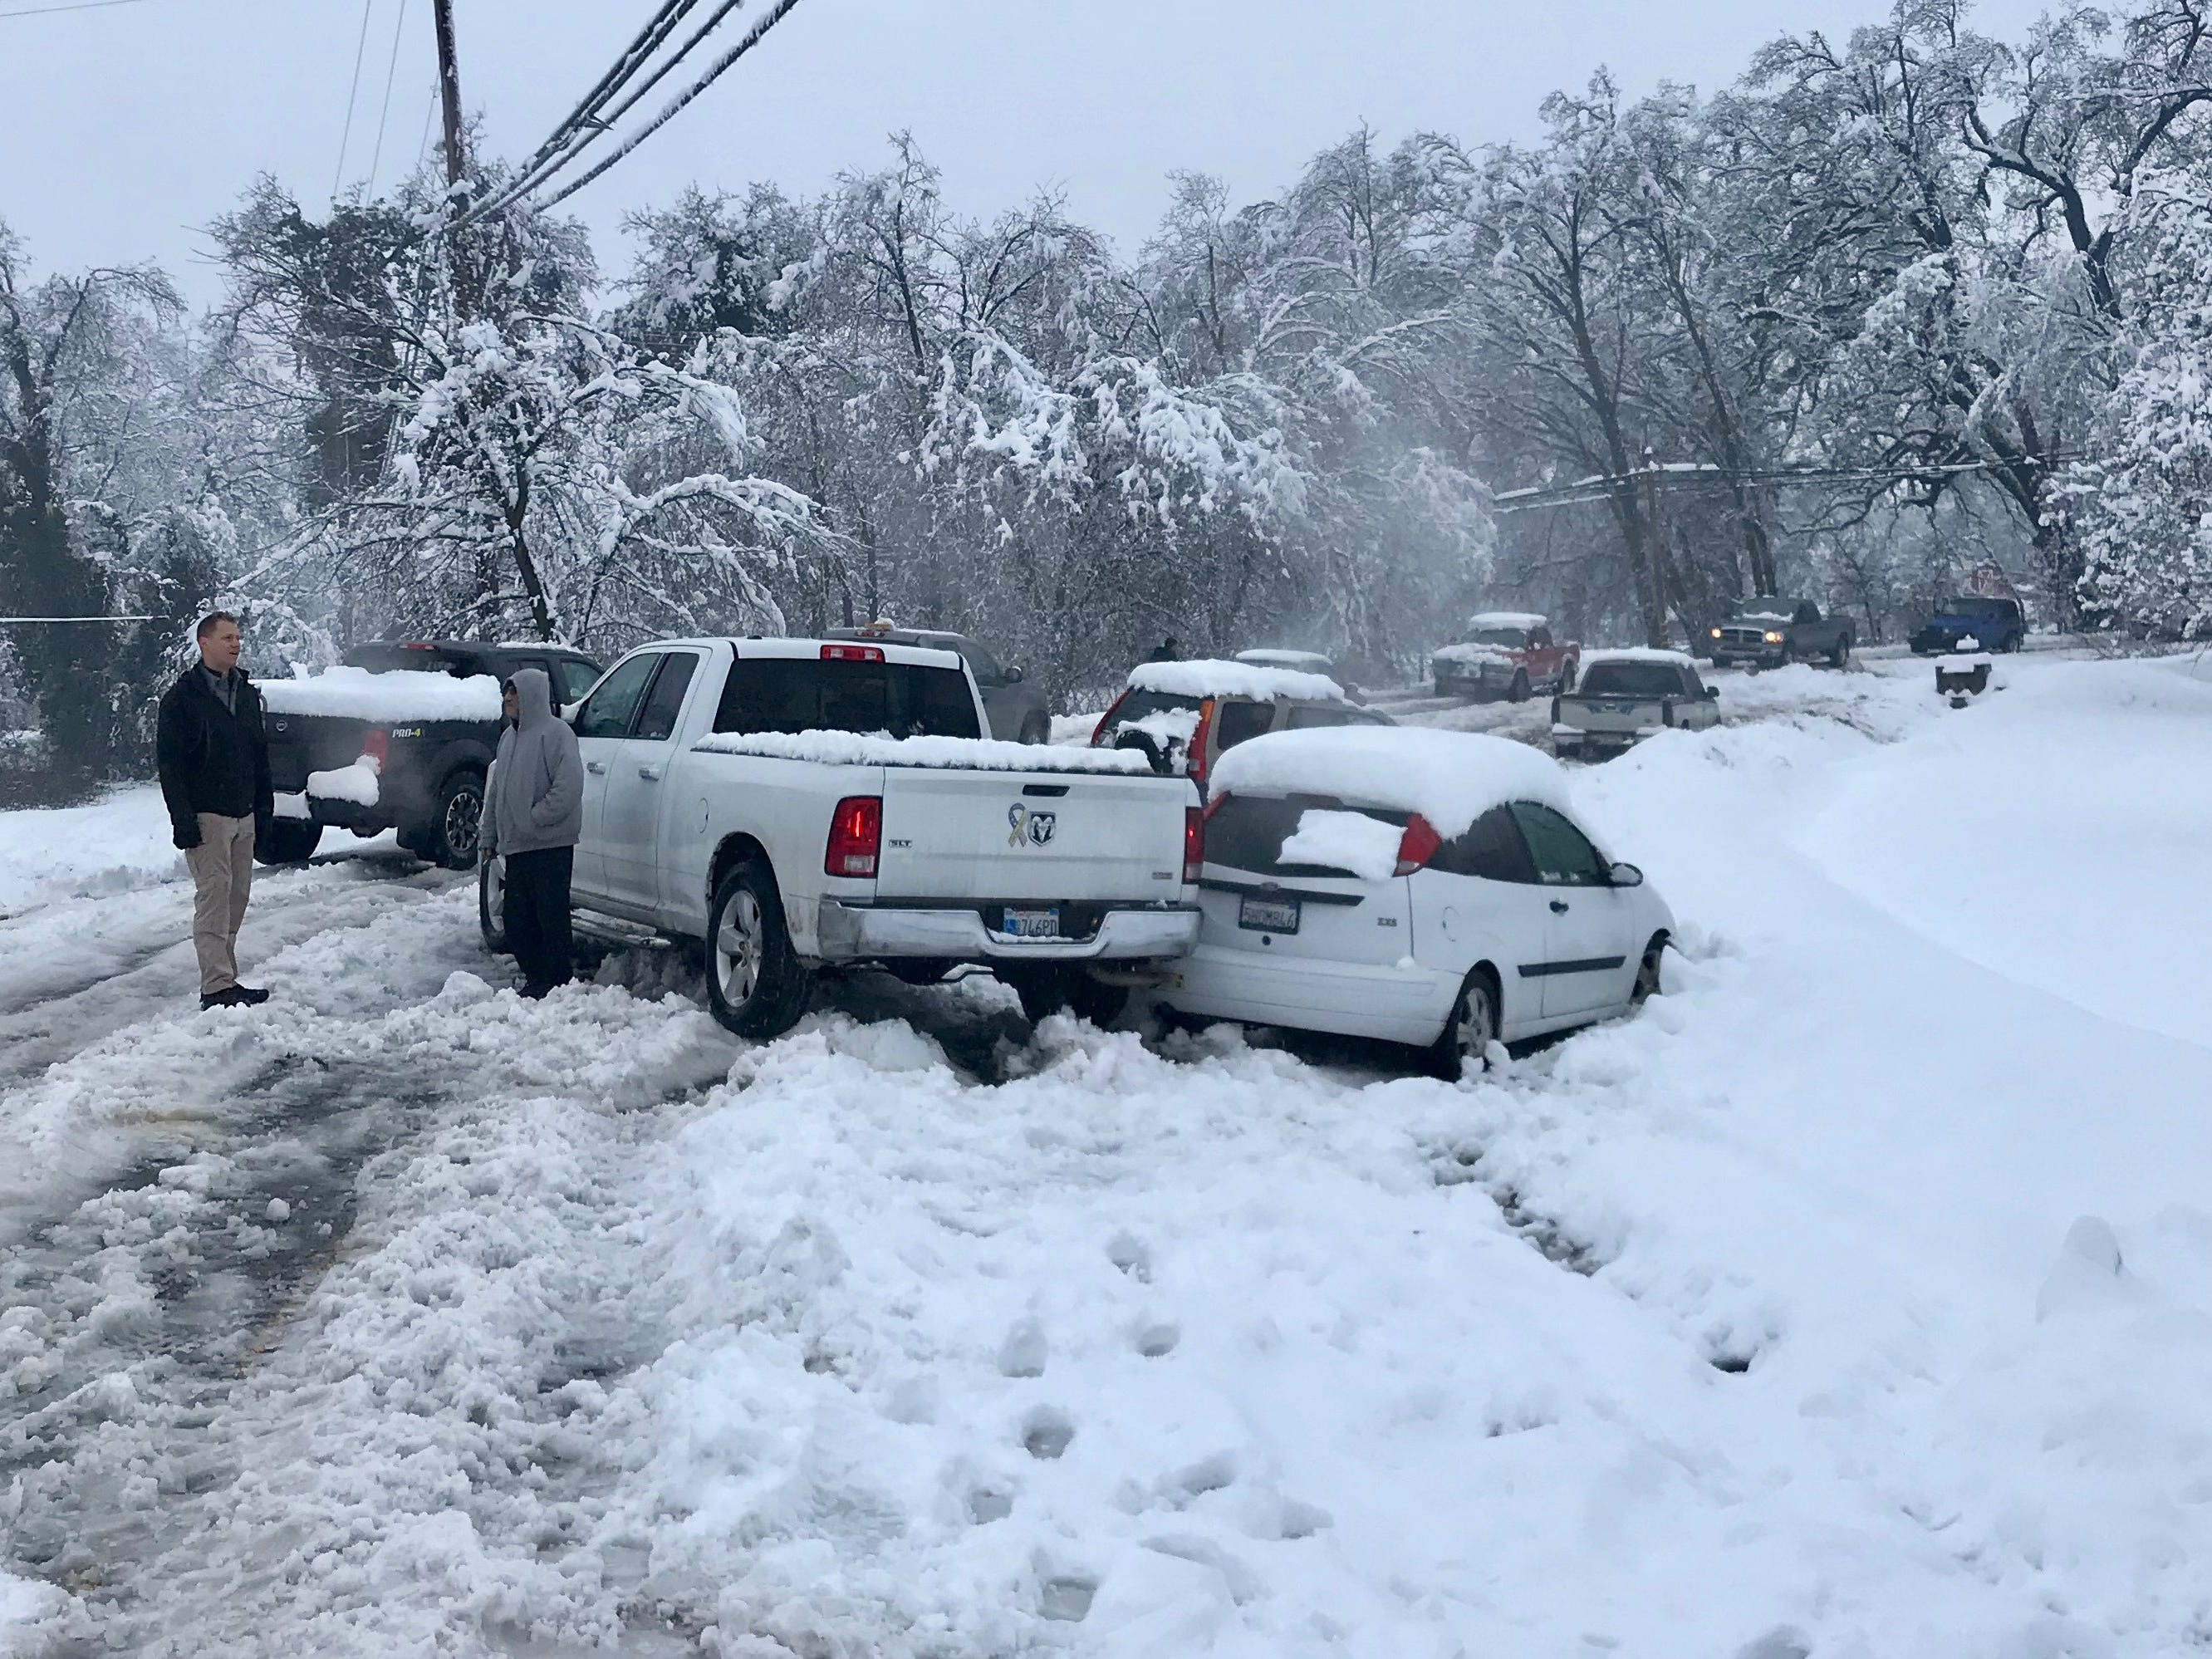 The winter storm on Wednesday, Feb. 13, 2019 caused numerous spin outs and pileups on the road, such as this one on Balls Ferry Road in south Anderson.